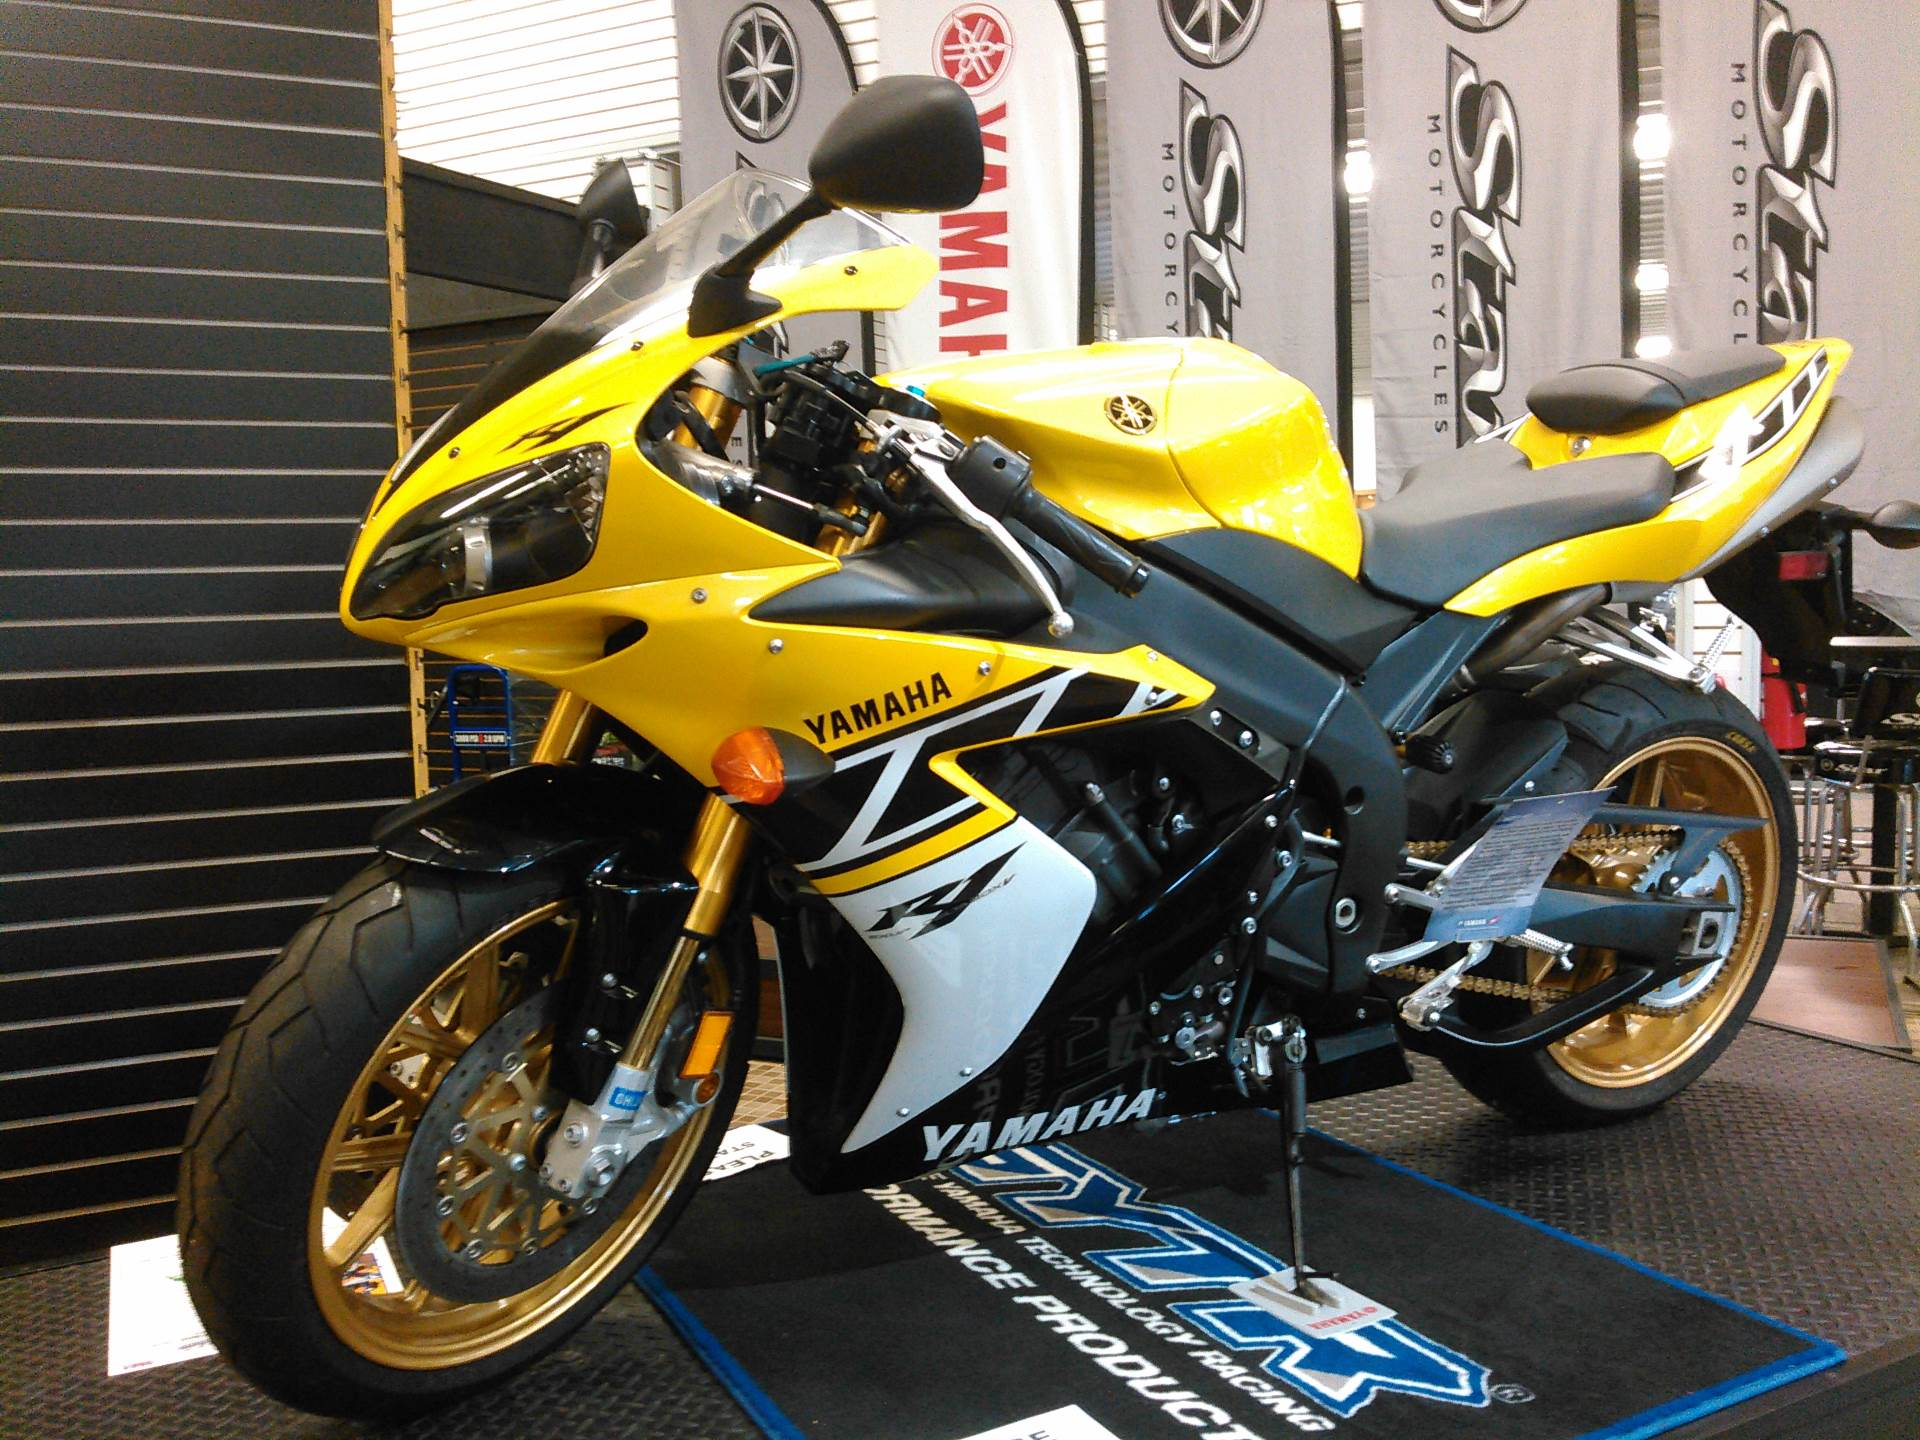 New 2006 yamaha r1 le motorcycles in yellow for sale for Yamaha installment financing